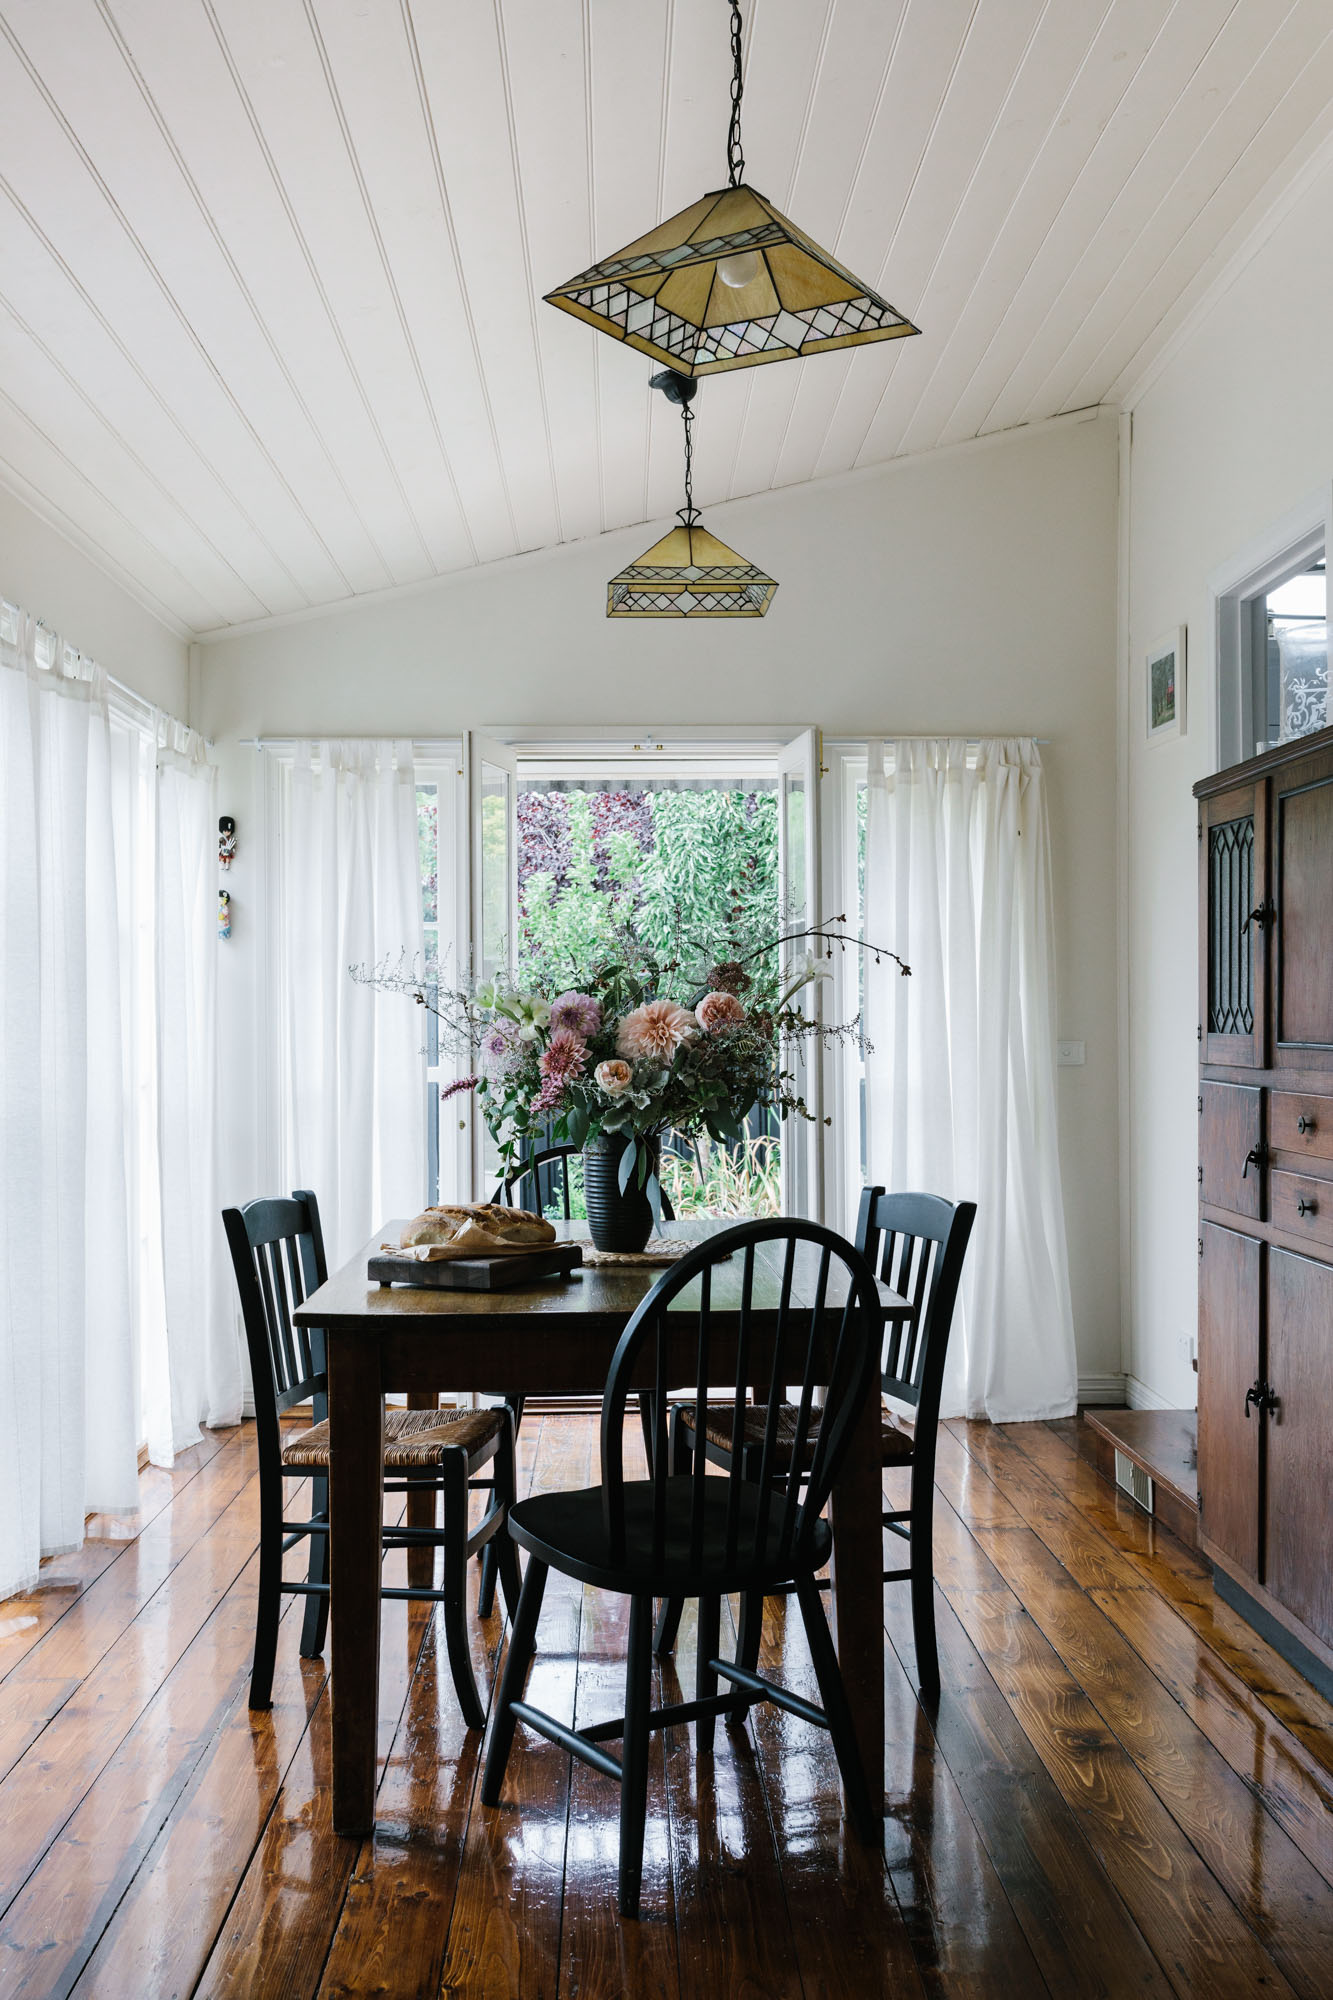 Marnie Hawson, Melbourne lifestyle photographer for Country Style and Kyneton travel story- Flop House